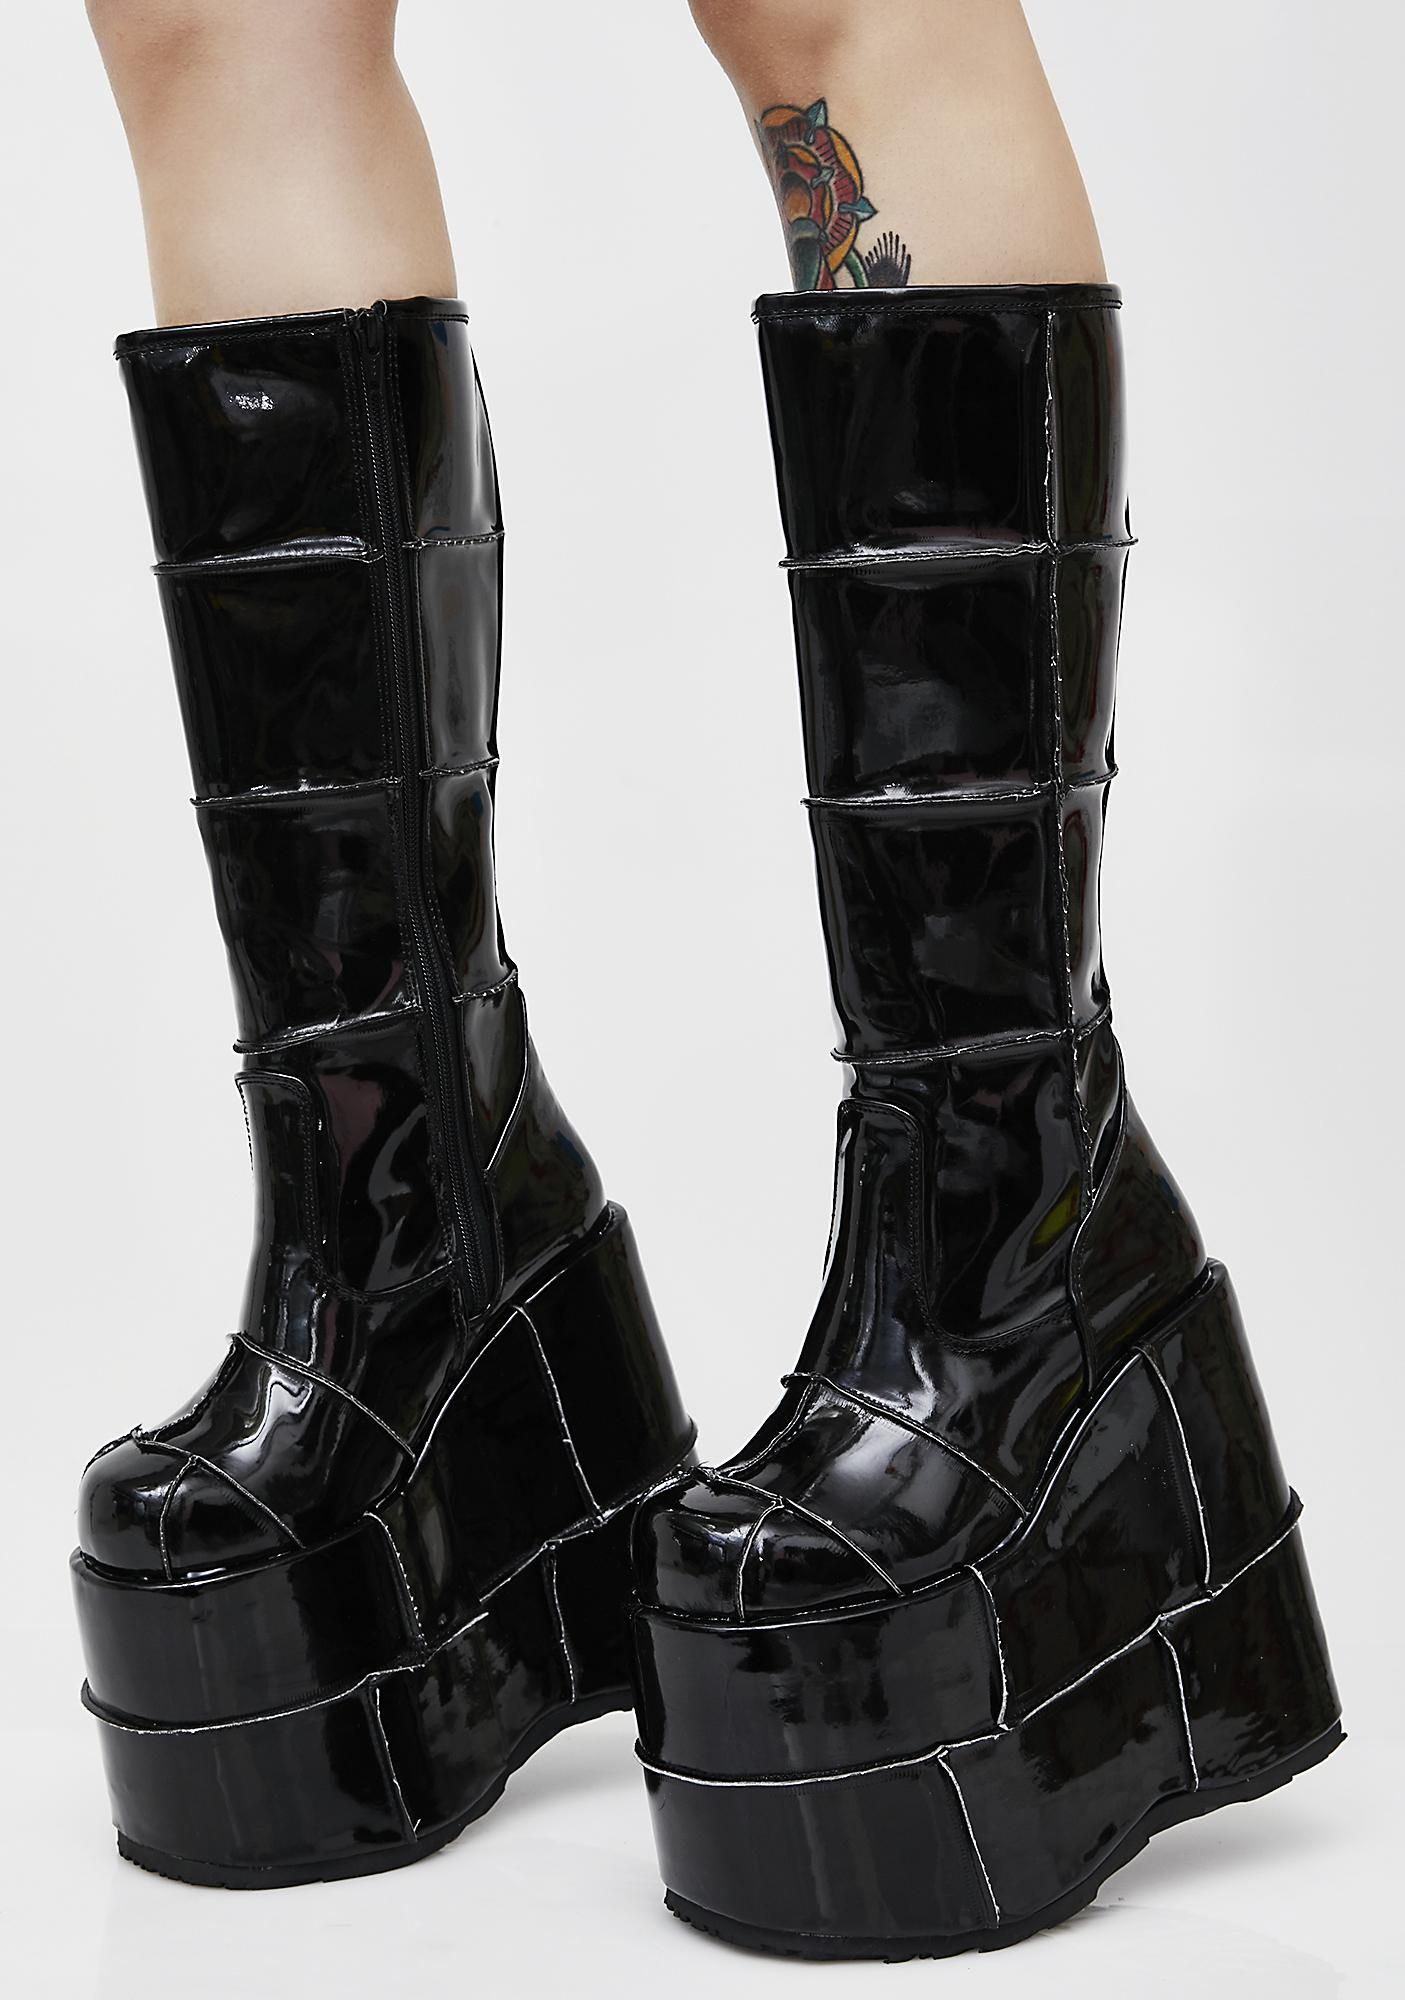 4c9aa65798c9 Demonia Patent Stack Platform Boots will take ya higher than ever. These  black patent boots have super thikk platform soles